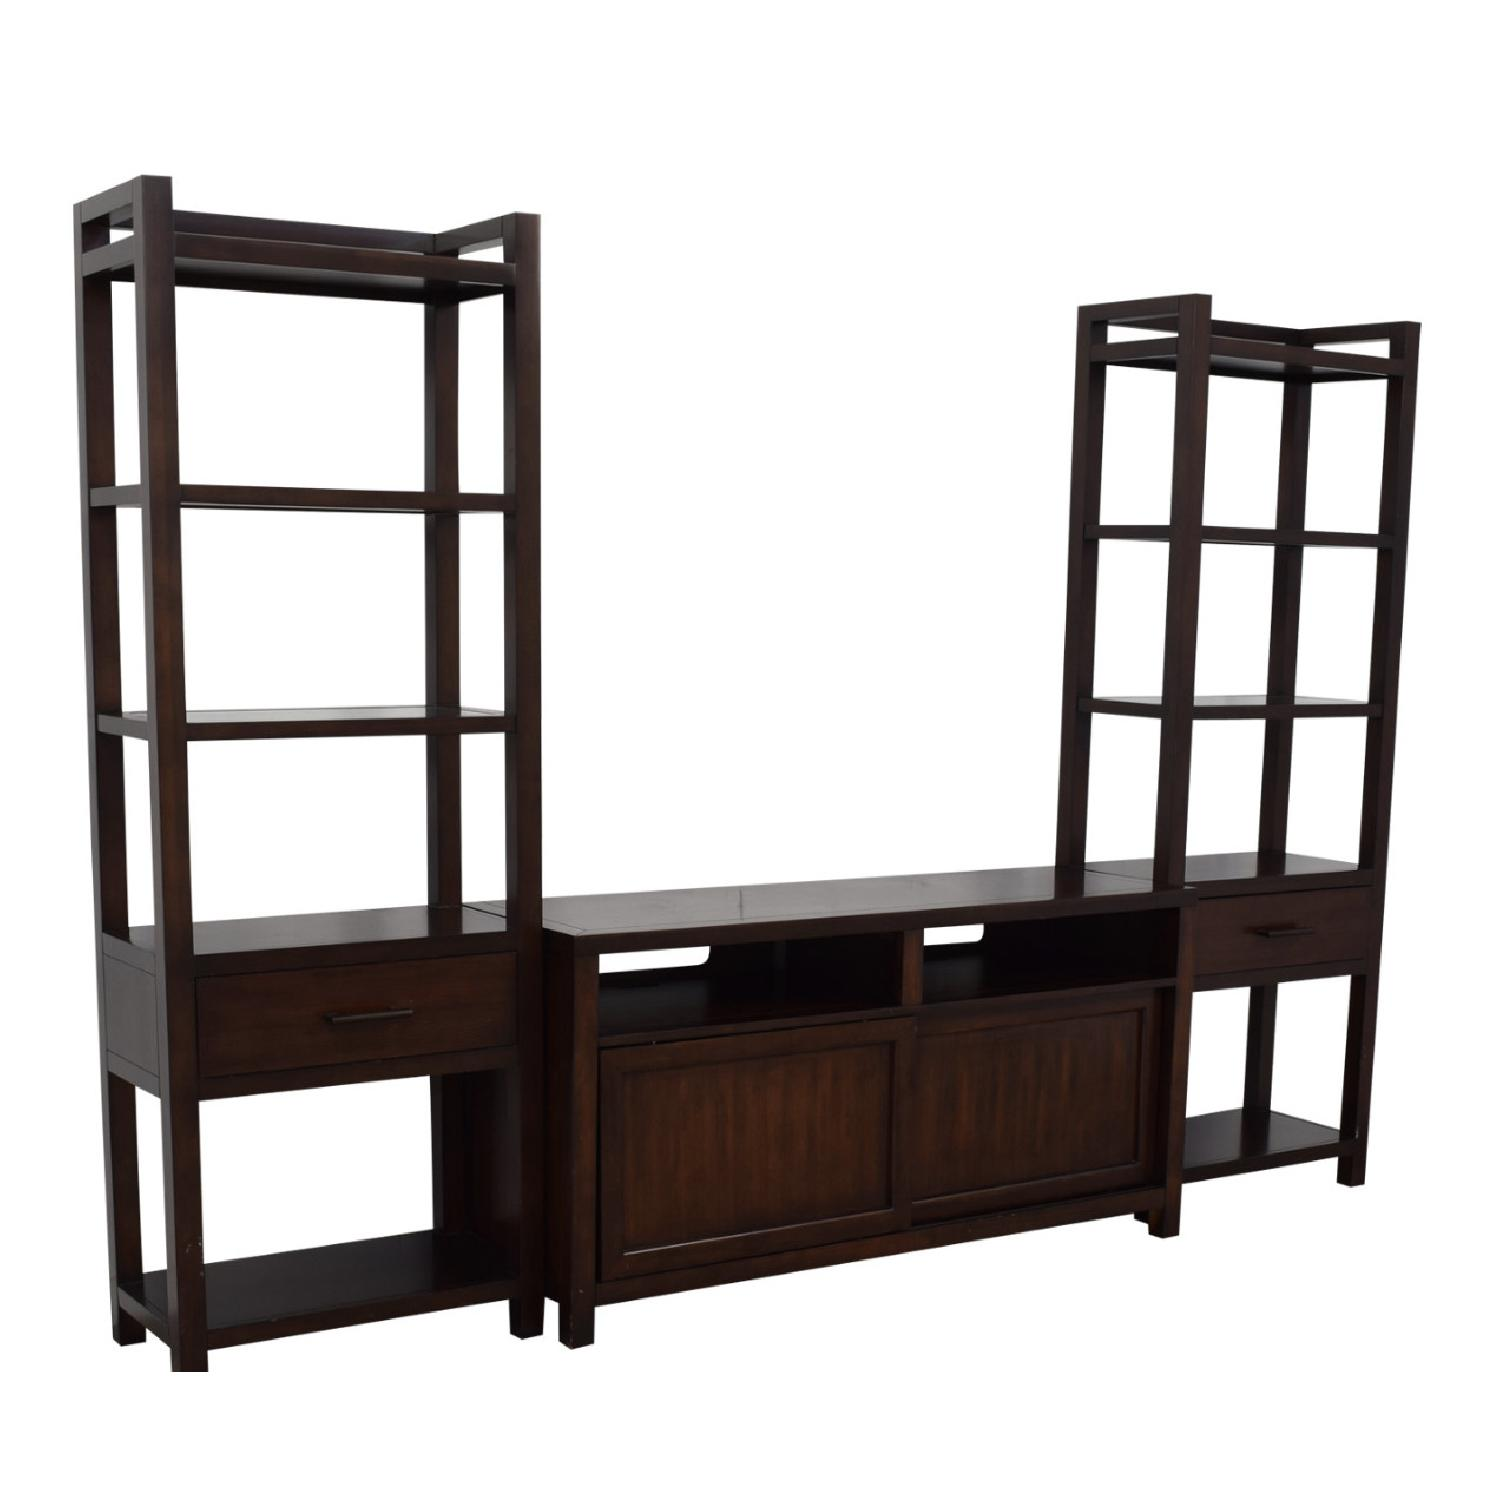 Crate & Barrel Media Console w/ 2 Media Towers - image-3